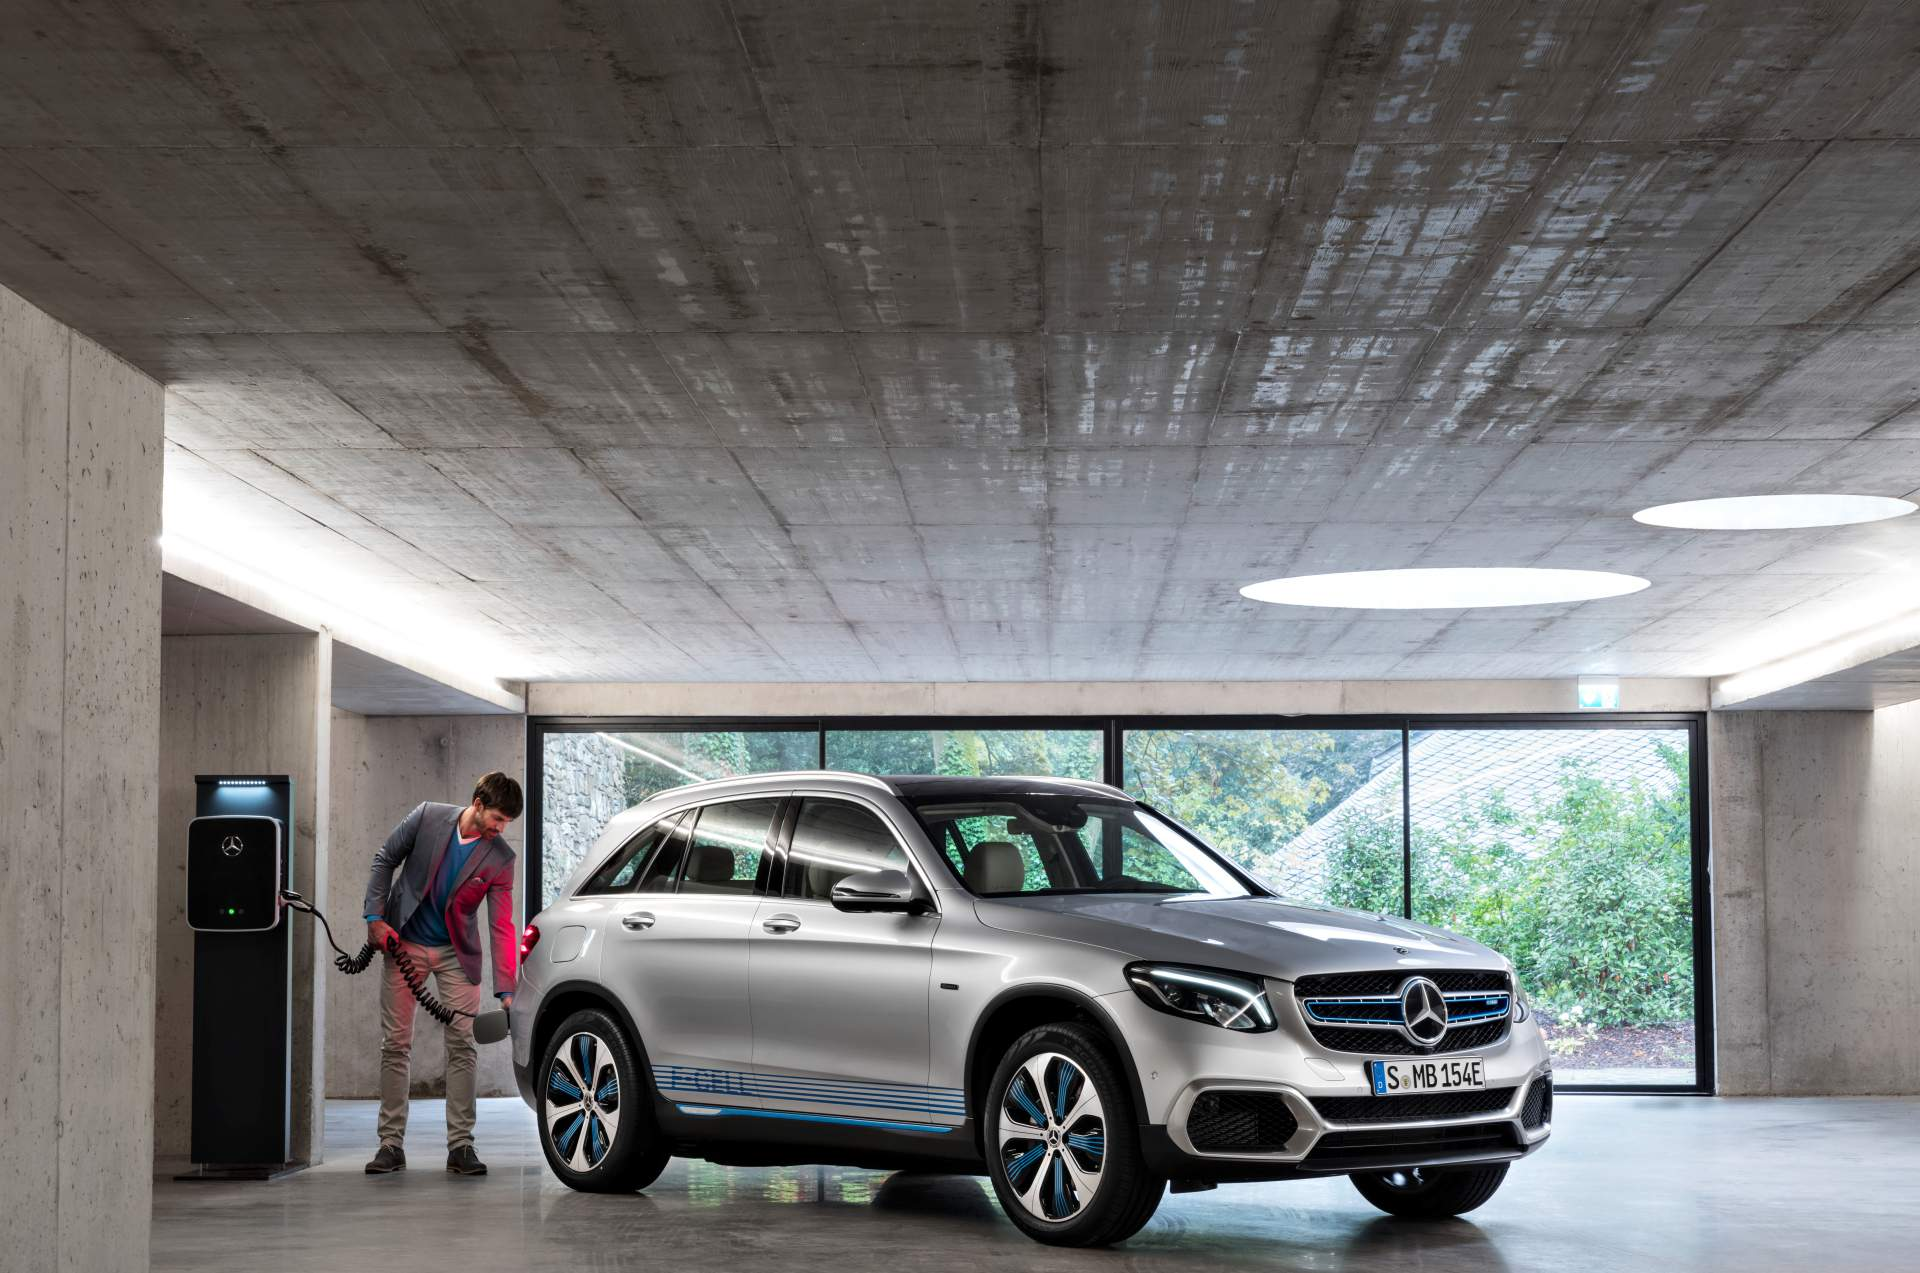 2019_Mercedes_GLC_F-Cell_0009